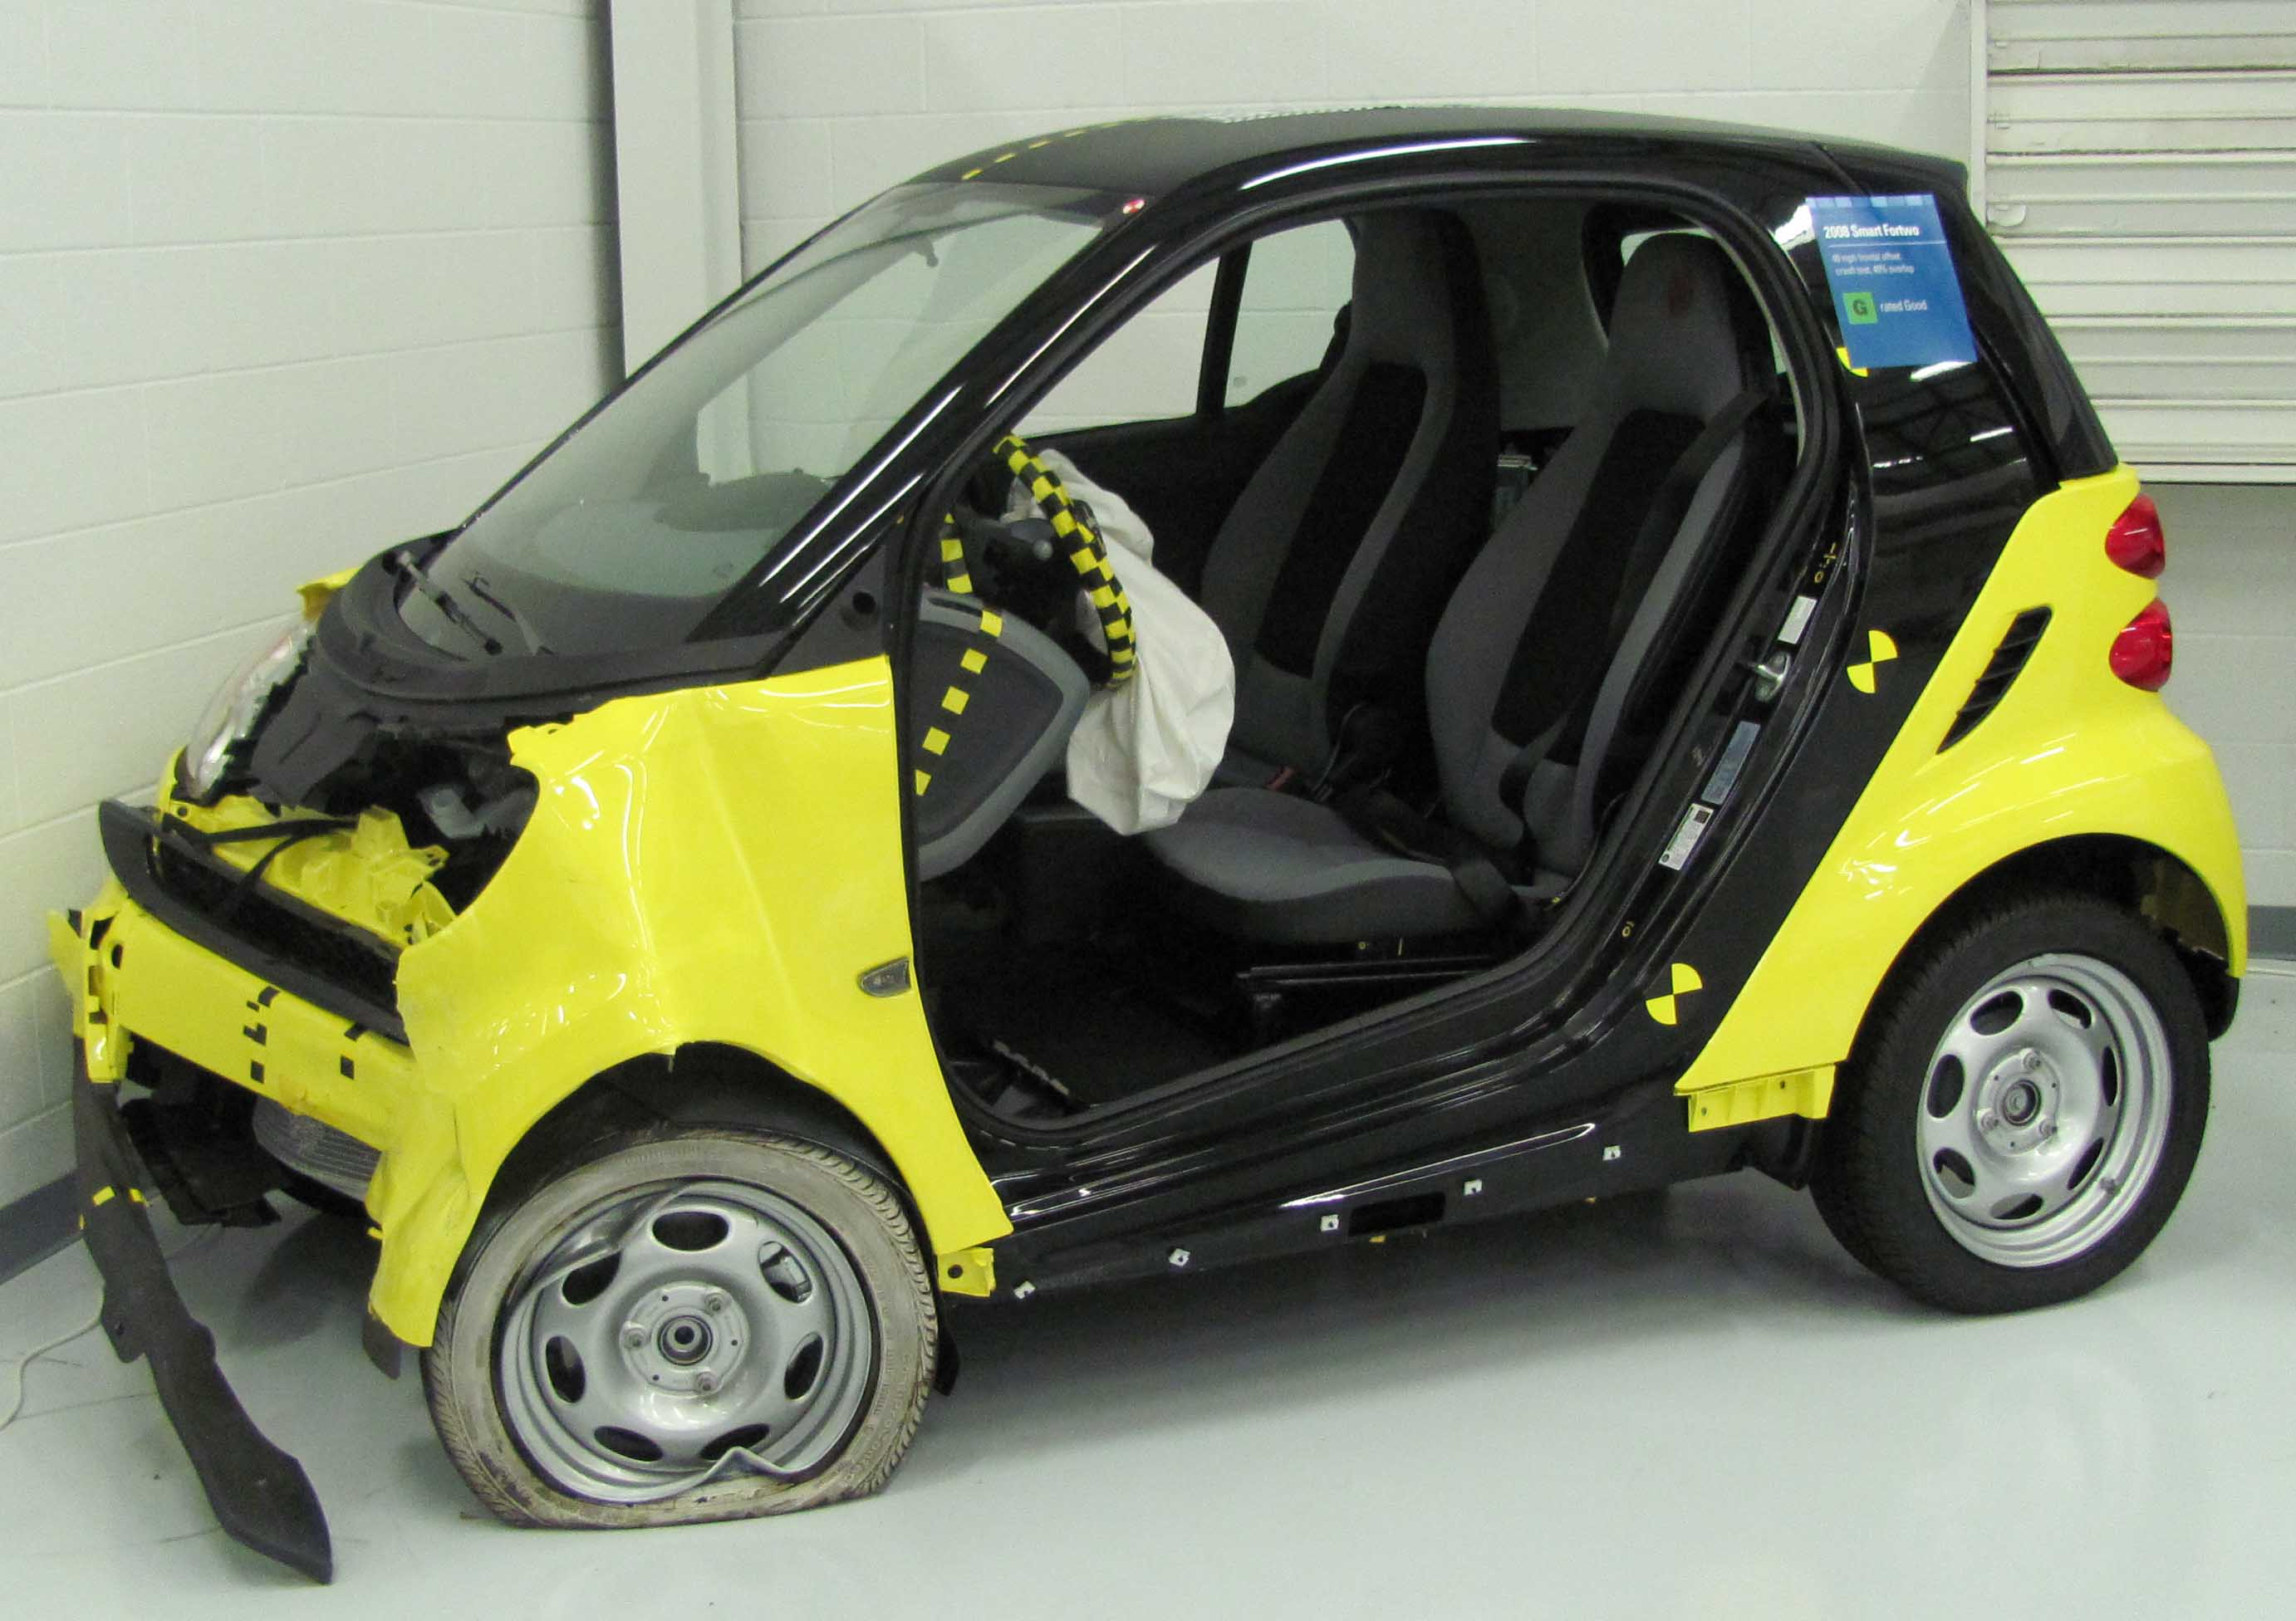 Car Crash Test Facility